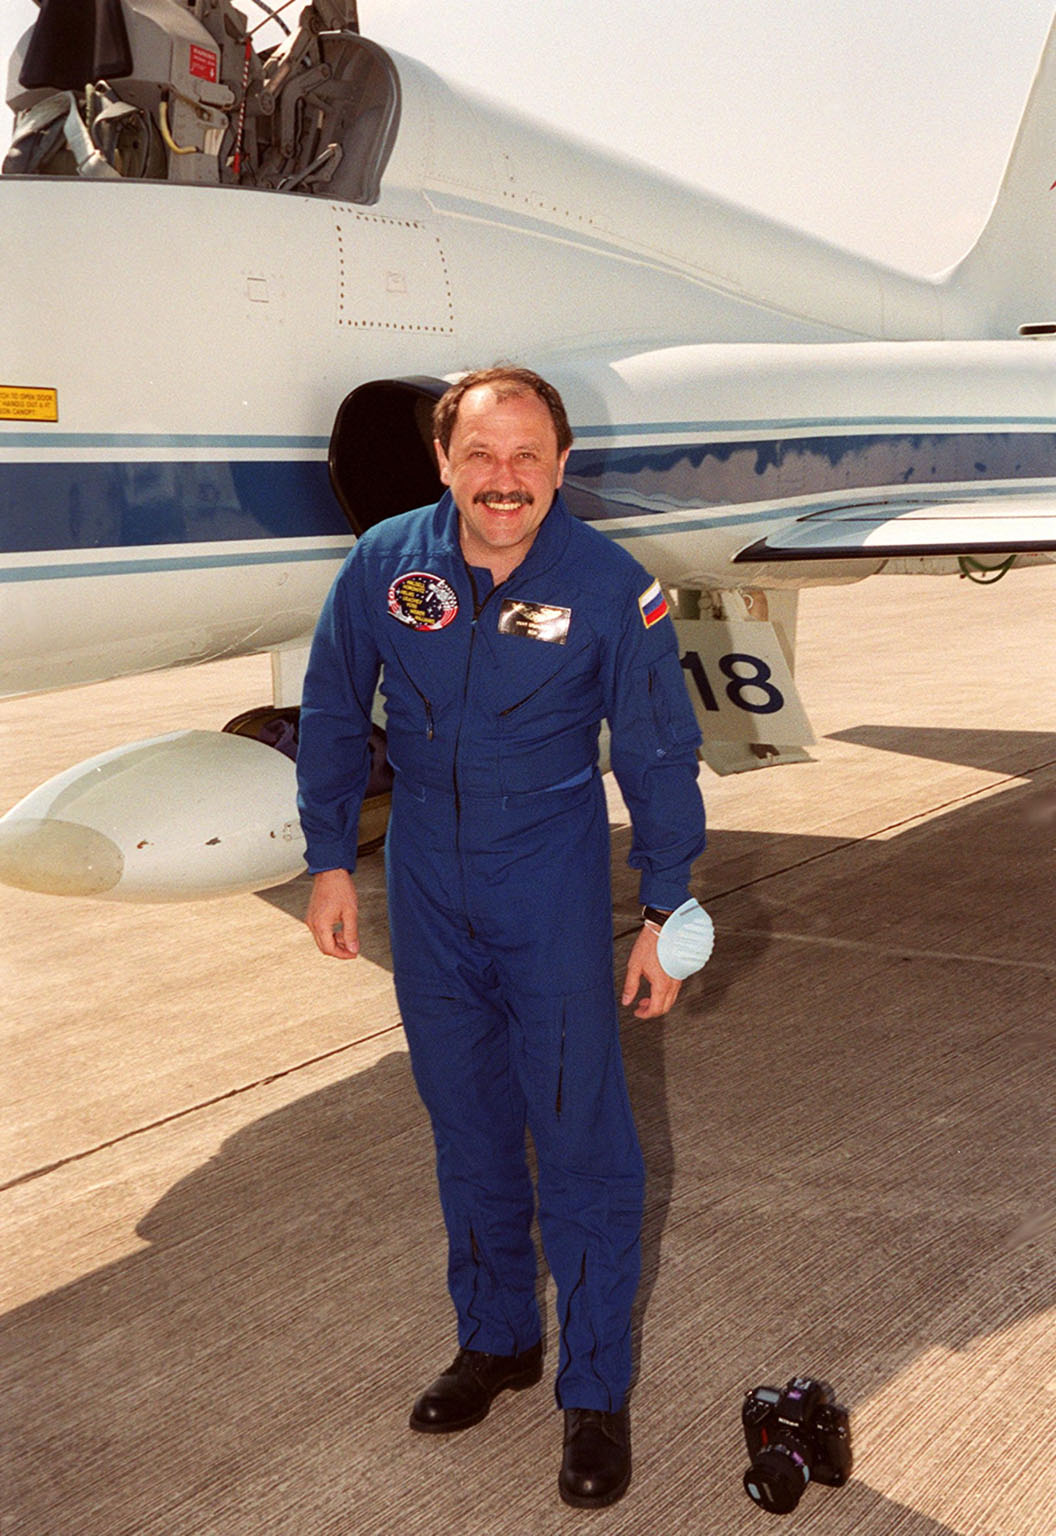 STS-101 Yury Usachev of Russia smiles on his arrival at KSC's Shuttle Landing Facility aboard the T-38 jet aircraft behind him. He and the rest of the crew are at KSC to get ready for their launch on April 24 about 4:15 p.m. EDT from Launch Pad 39A. The mission will take the crew to the International Space Station, delivering logistics and supplies, plus preparing the Station for the arrival of the Zvezda Service Module, expected to be launched by Russia in July 2000. Also, the crew will conduct one space walk to perform maintenance on the Space Station. This will be the third assembly flight for the Space Station